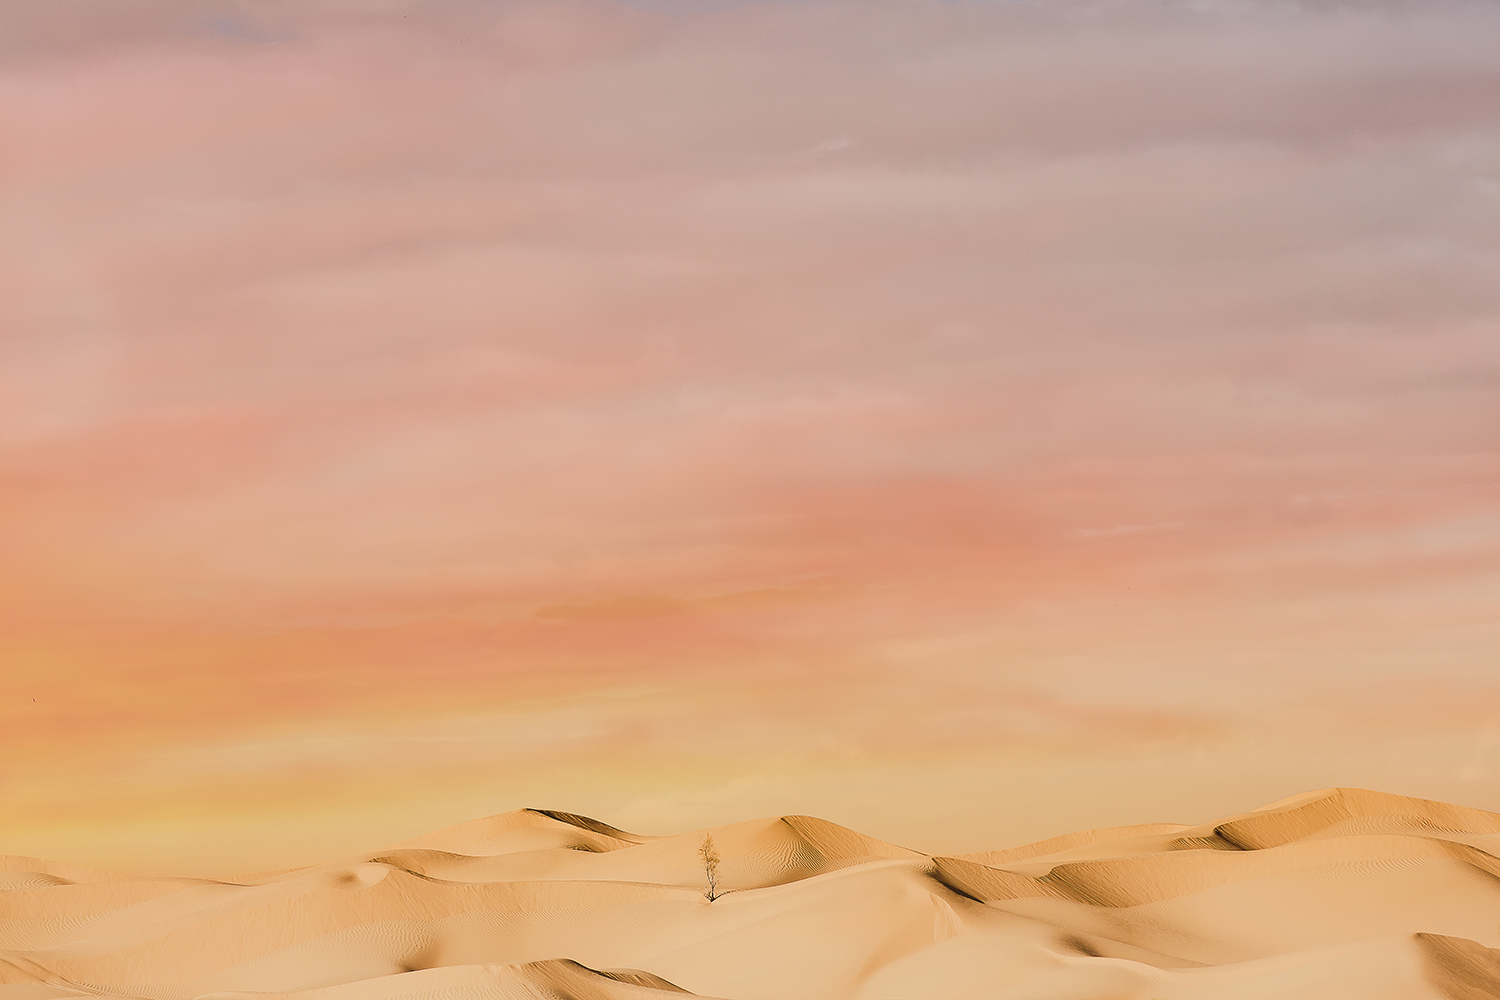 SN_0697-sophie-narses-photographe-Tunisie-Voyage-book-shooting-geneve-mariage-suisse-famille-animaux-tirages-art-cours-photo-paysages-desert